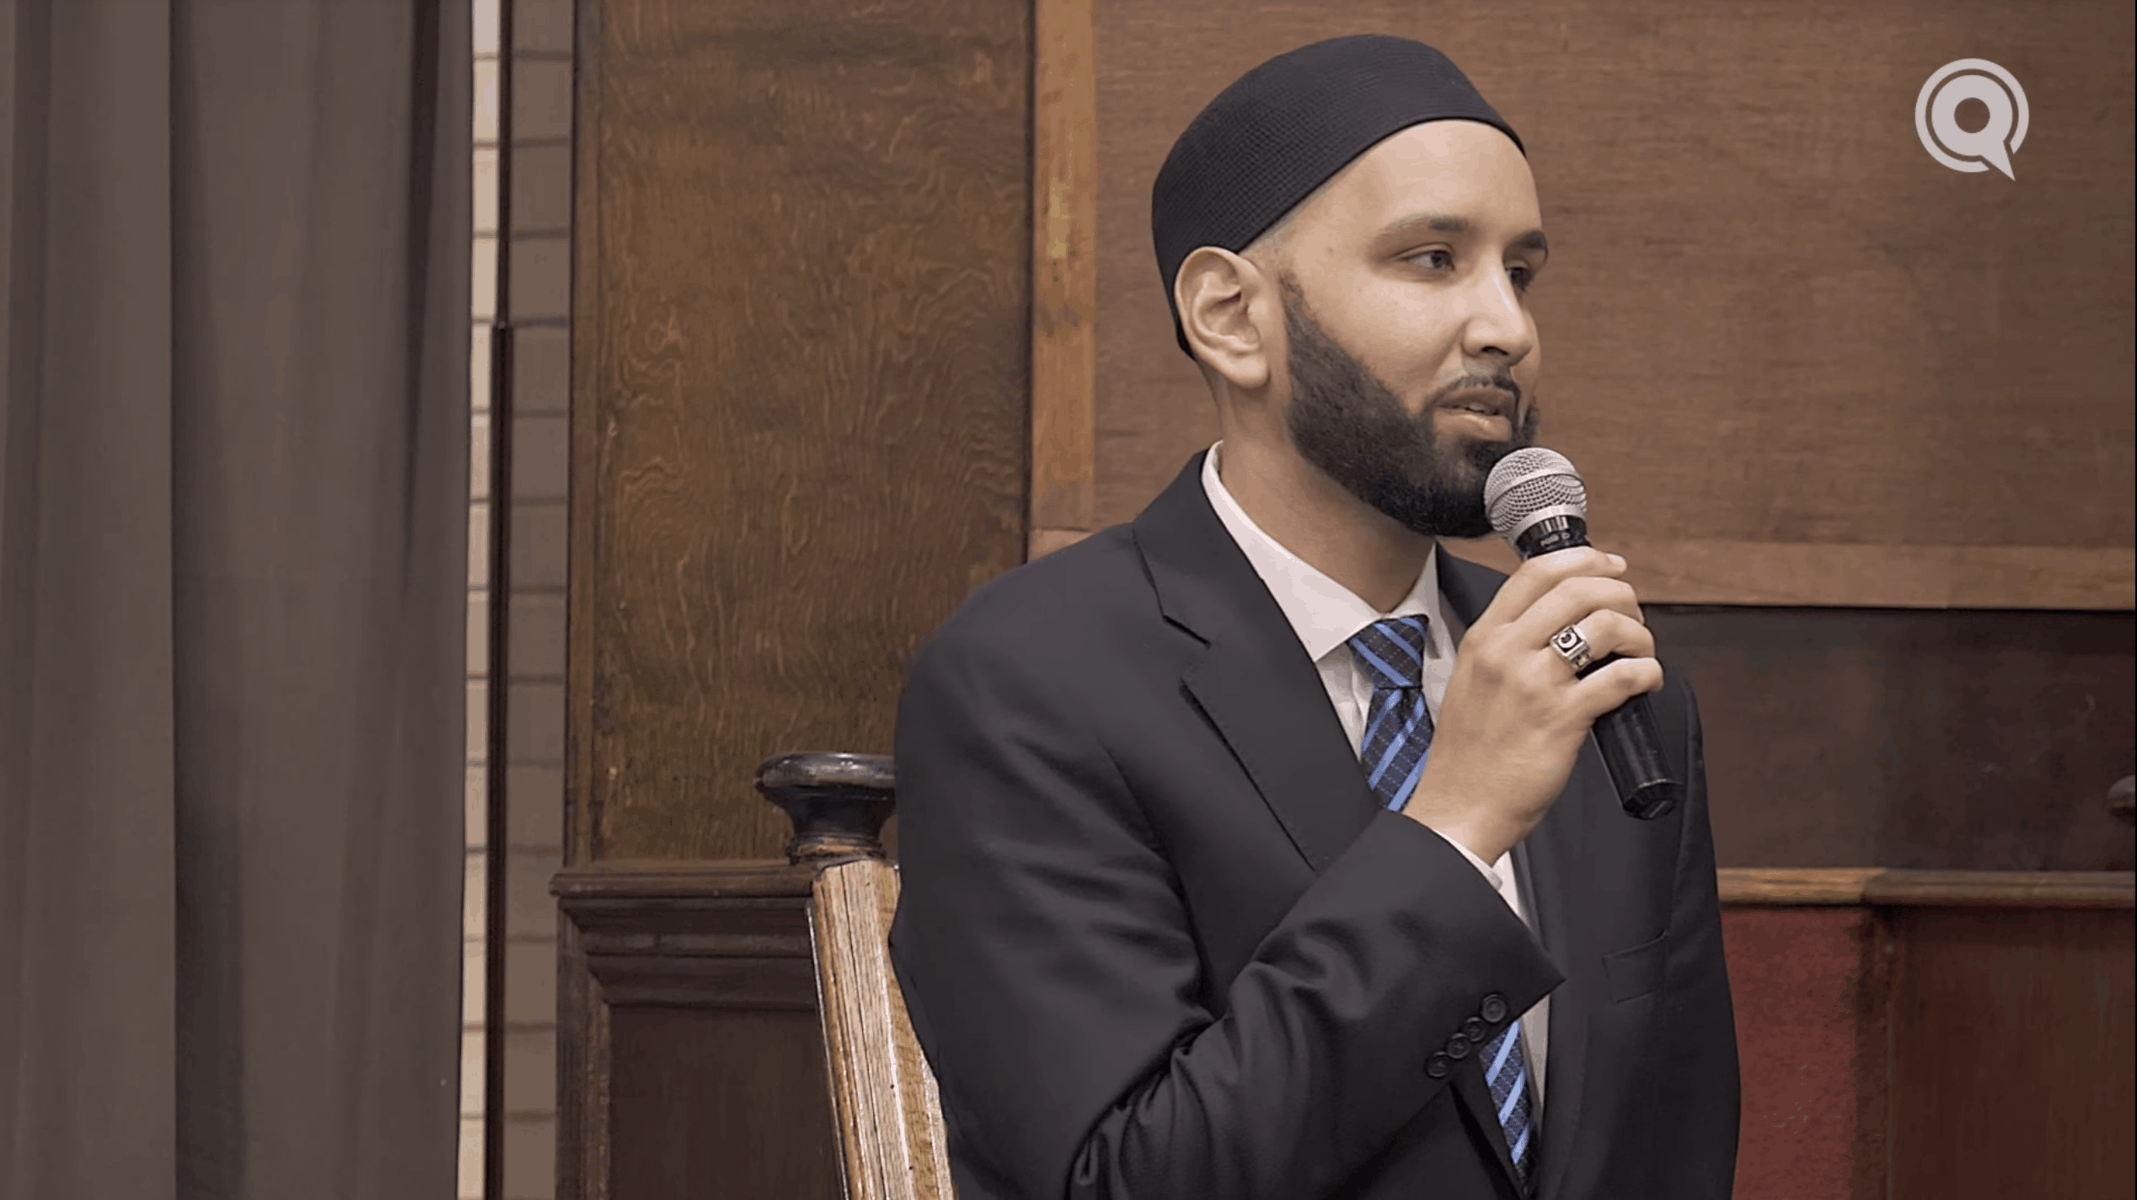 Omar Suleiman – Meaningful Solidarity